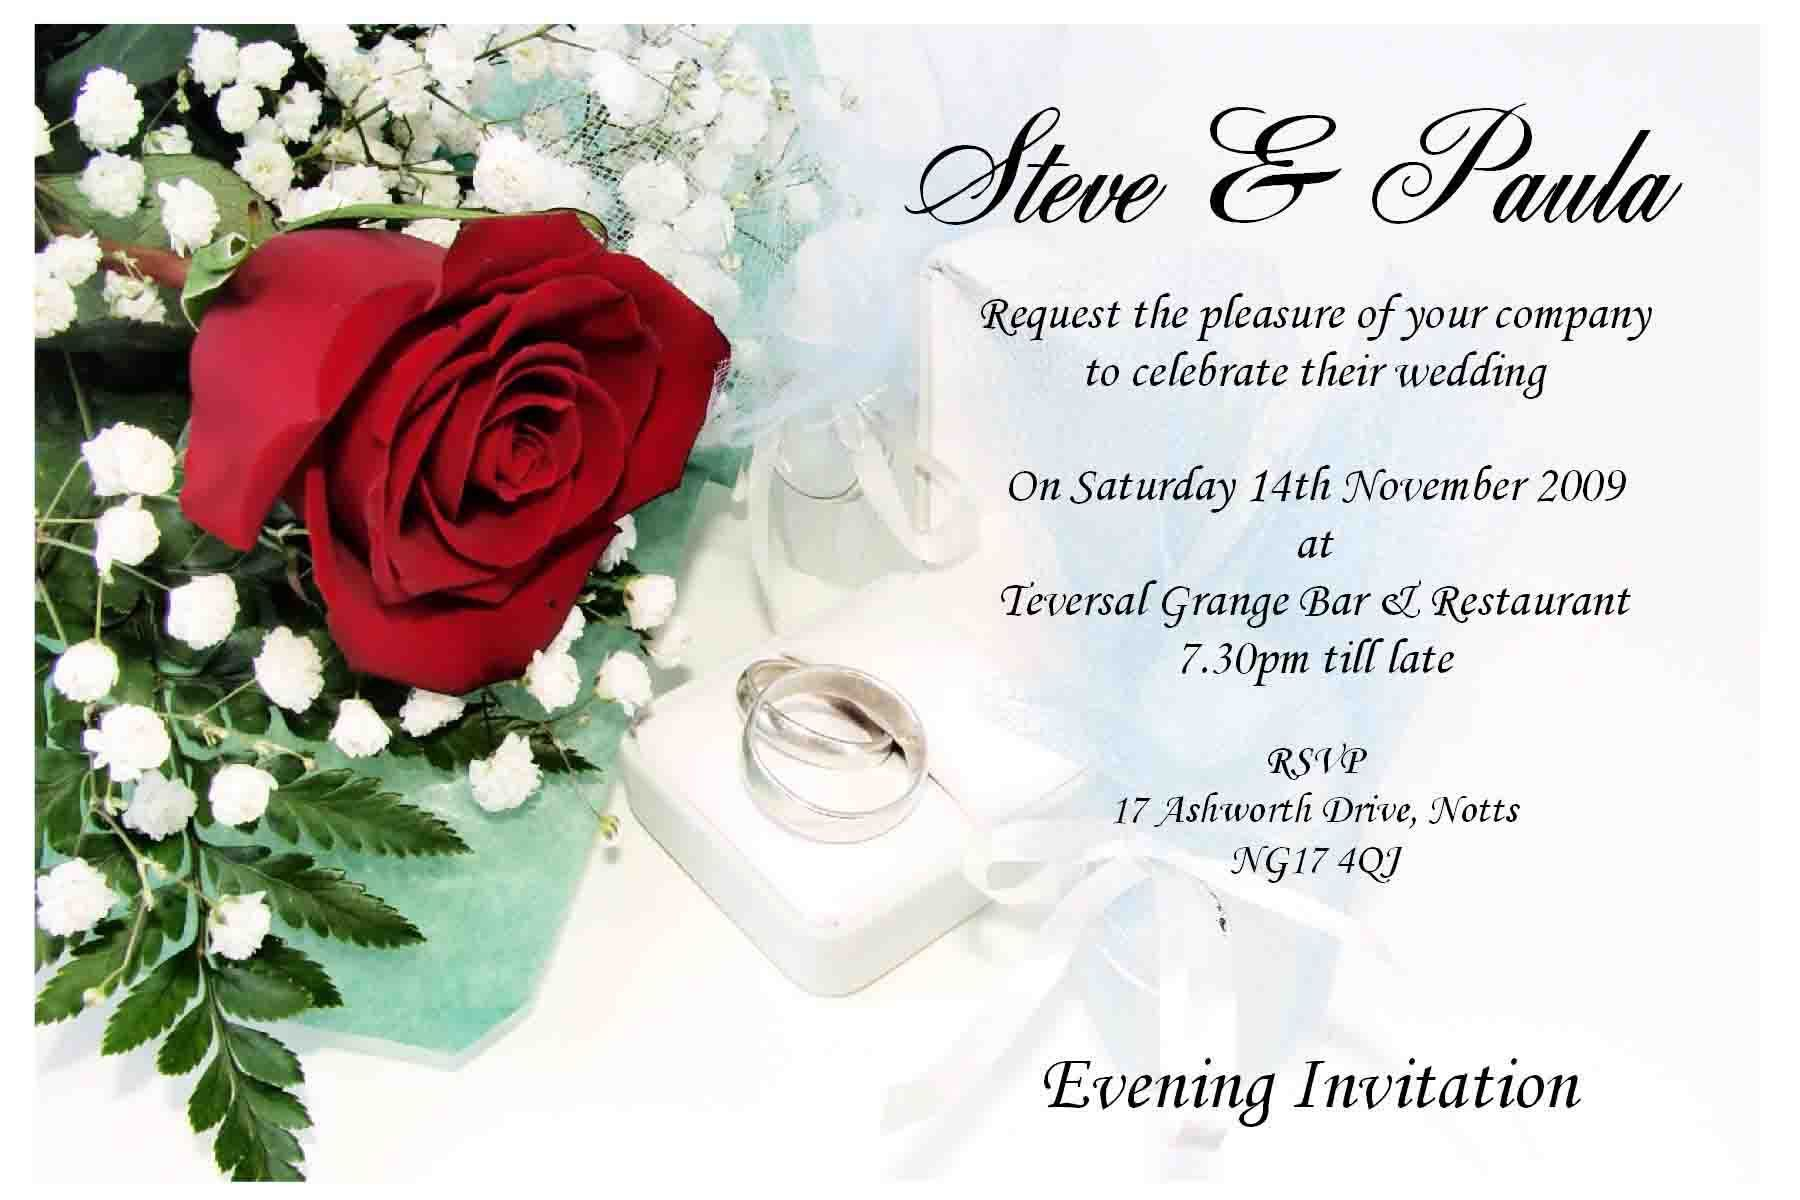 Invitation Wedding Card: Contoh-wedding-invitation-card